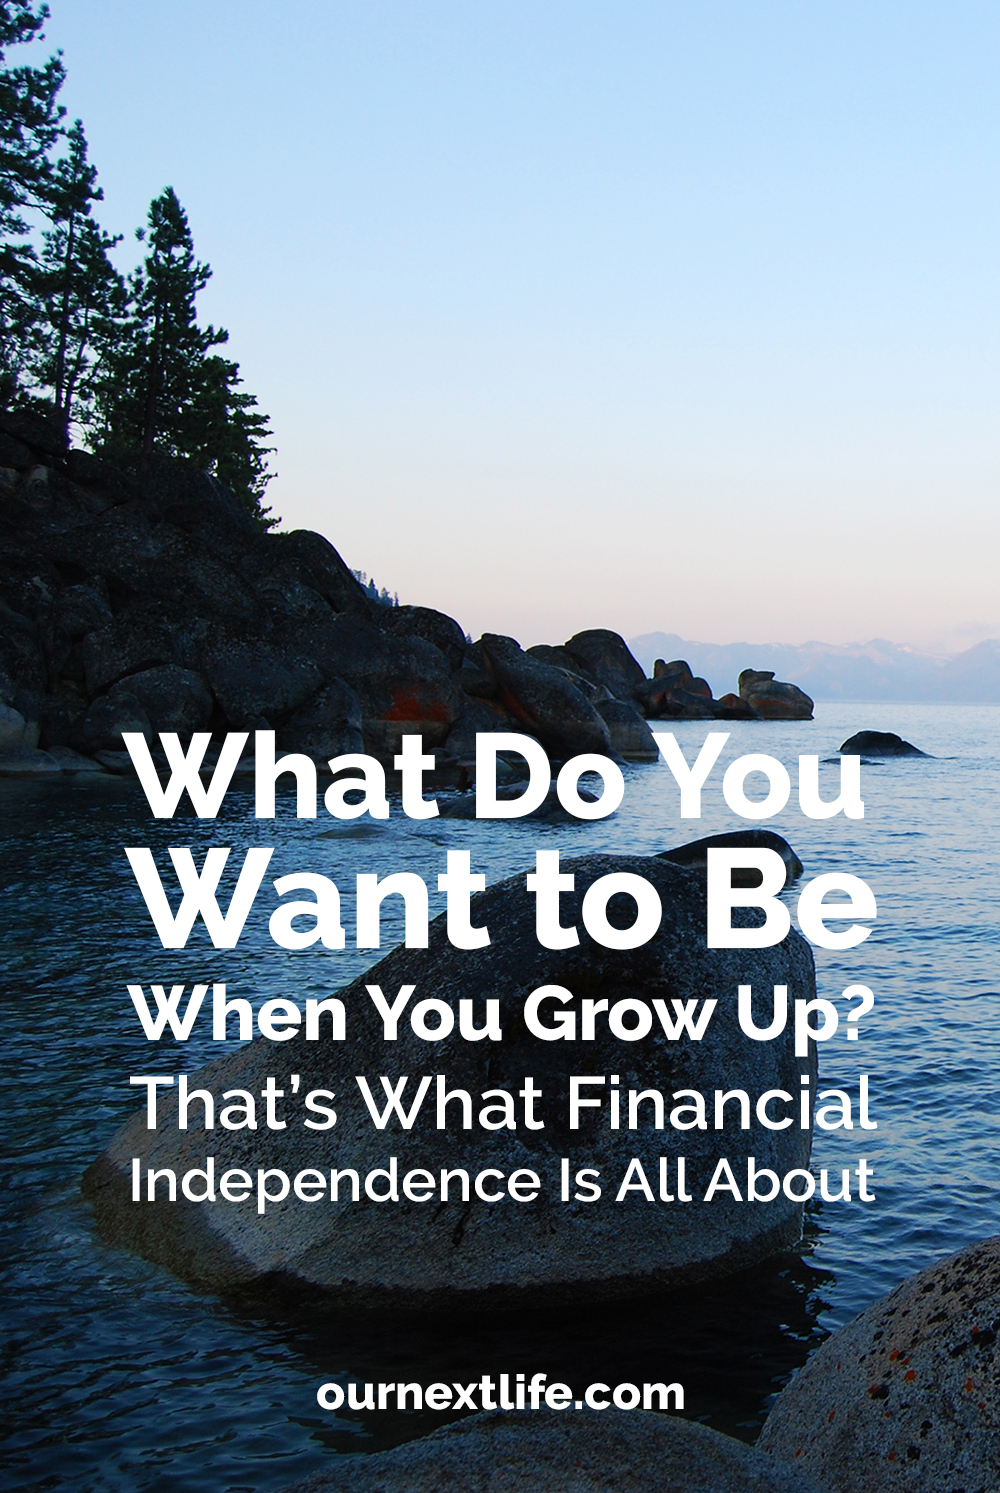 Our Next Life // What do you want to be when you grow up? That's what financial independence is all about. // Early retirement lets us answer that question, which is a way better question to focus on than